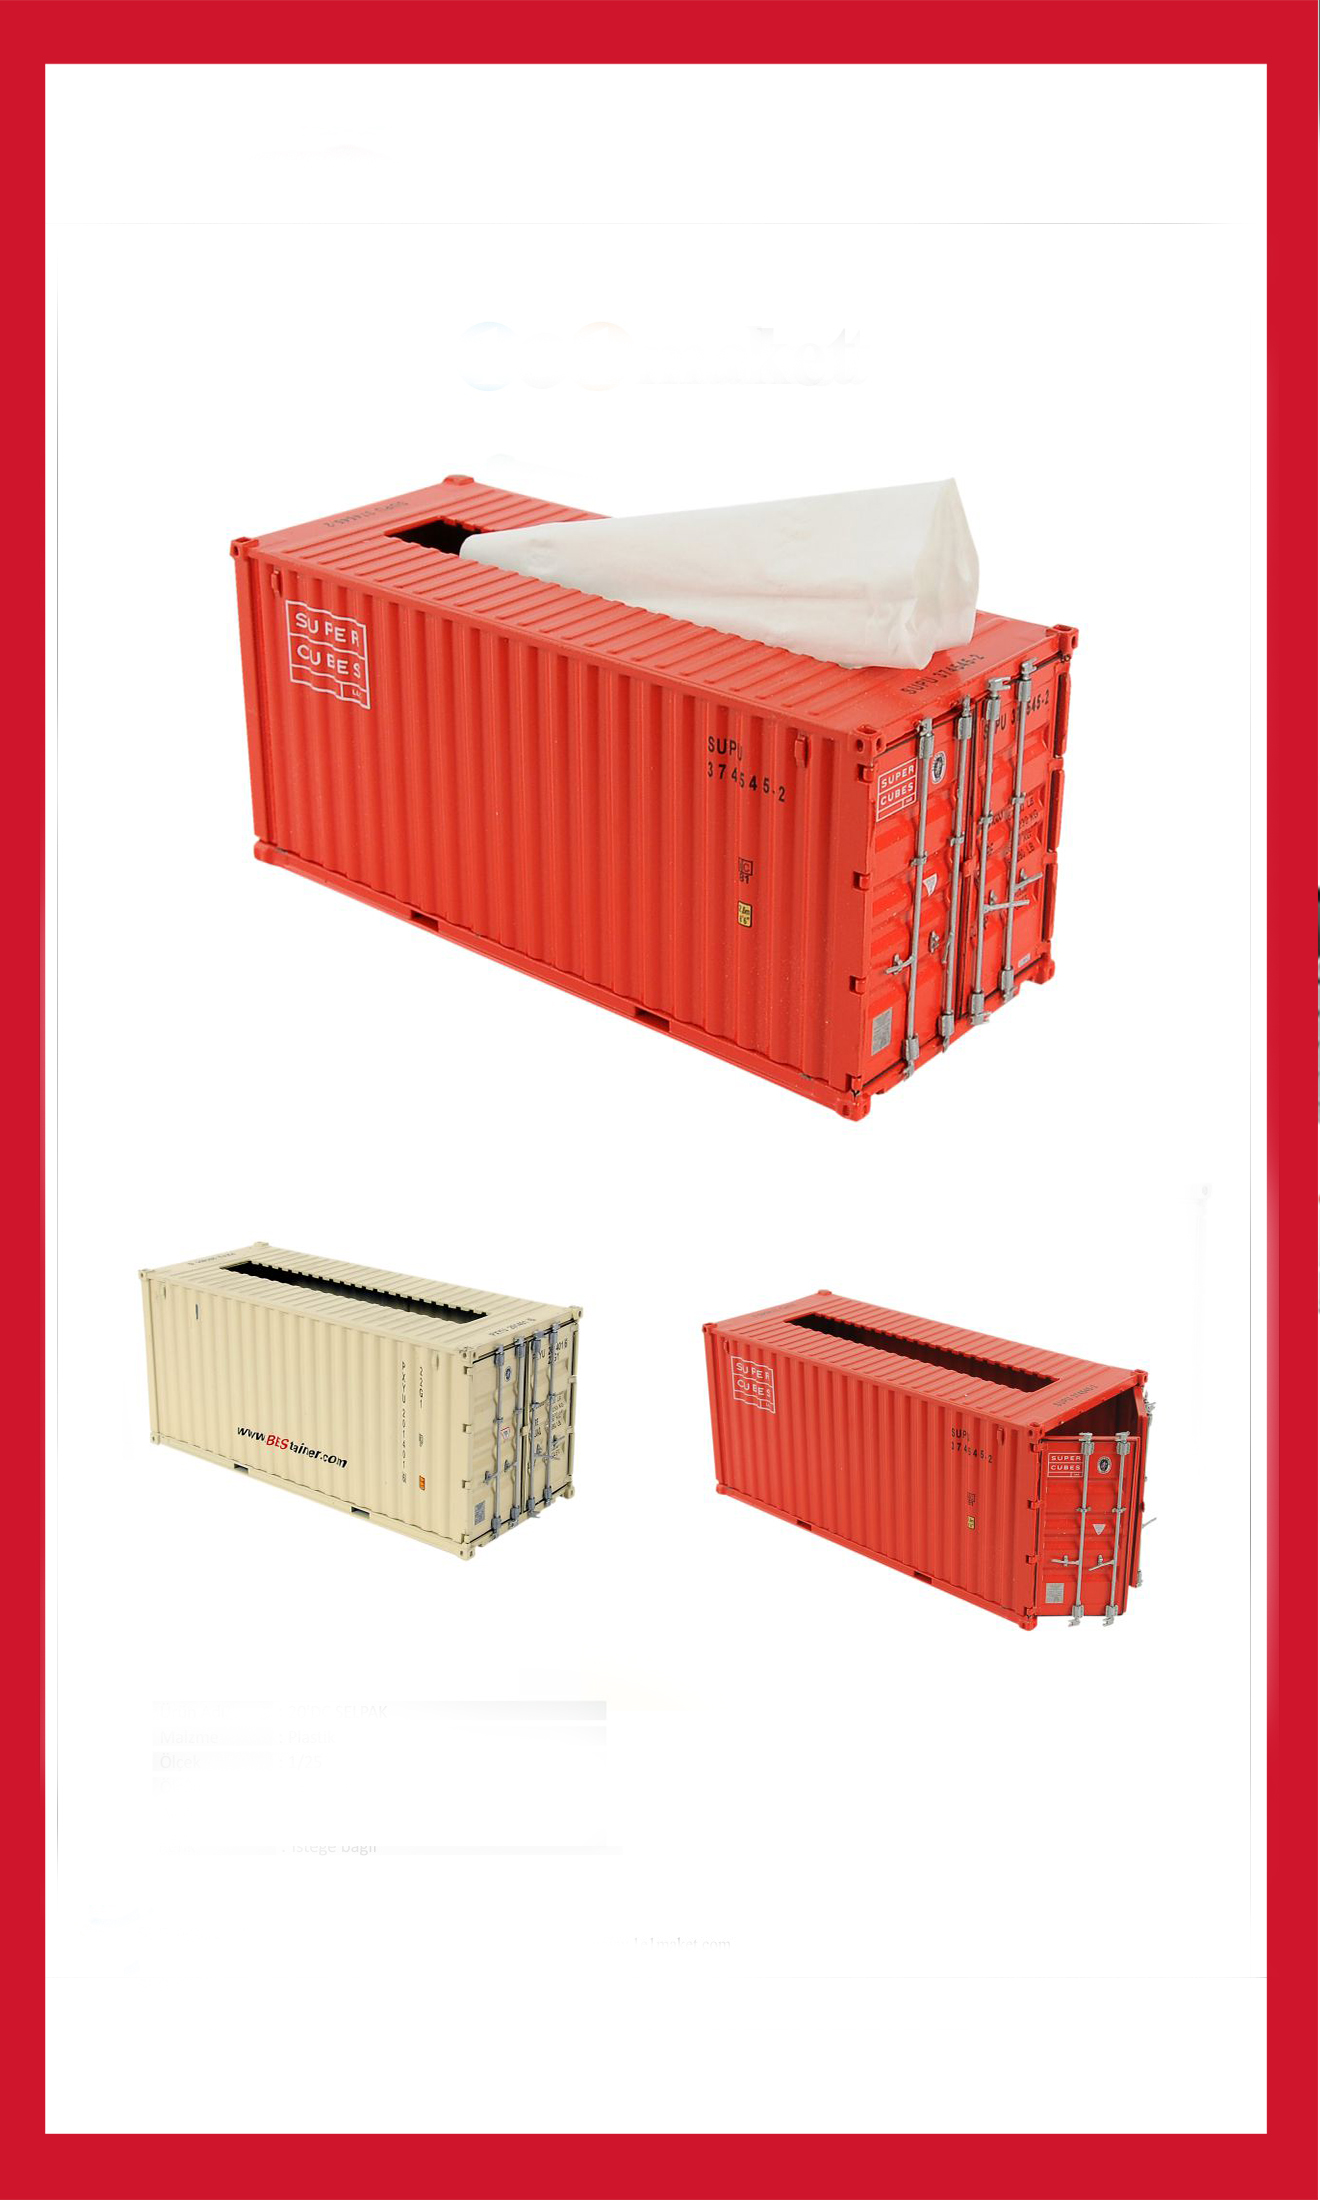 Container - Paper Towels - Iron